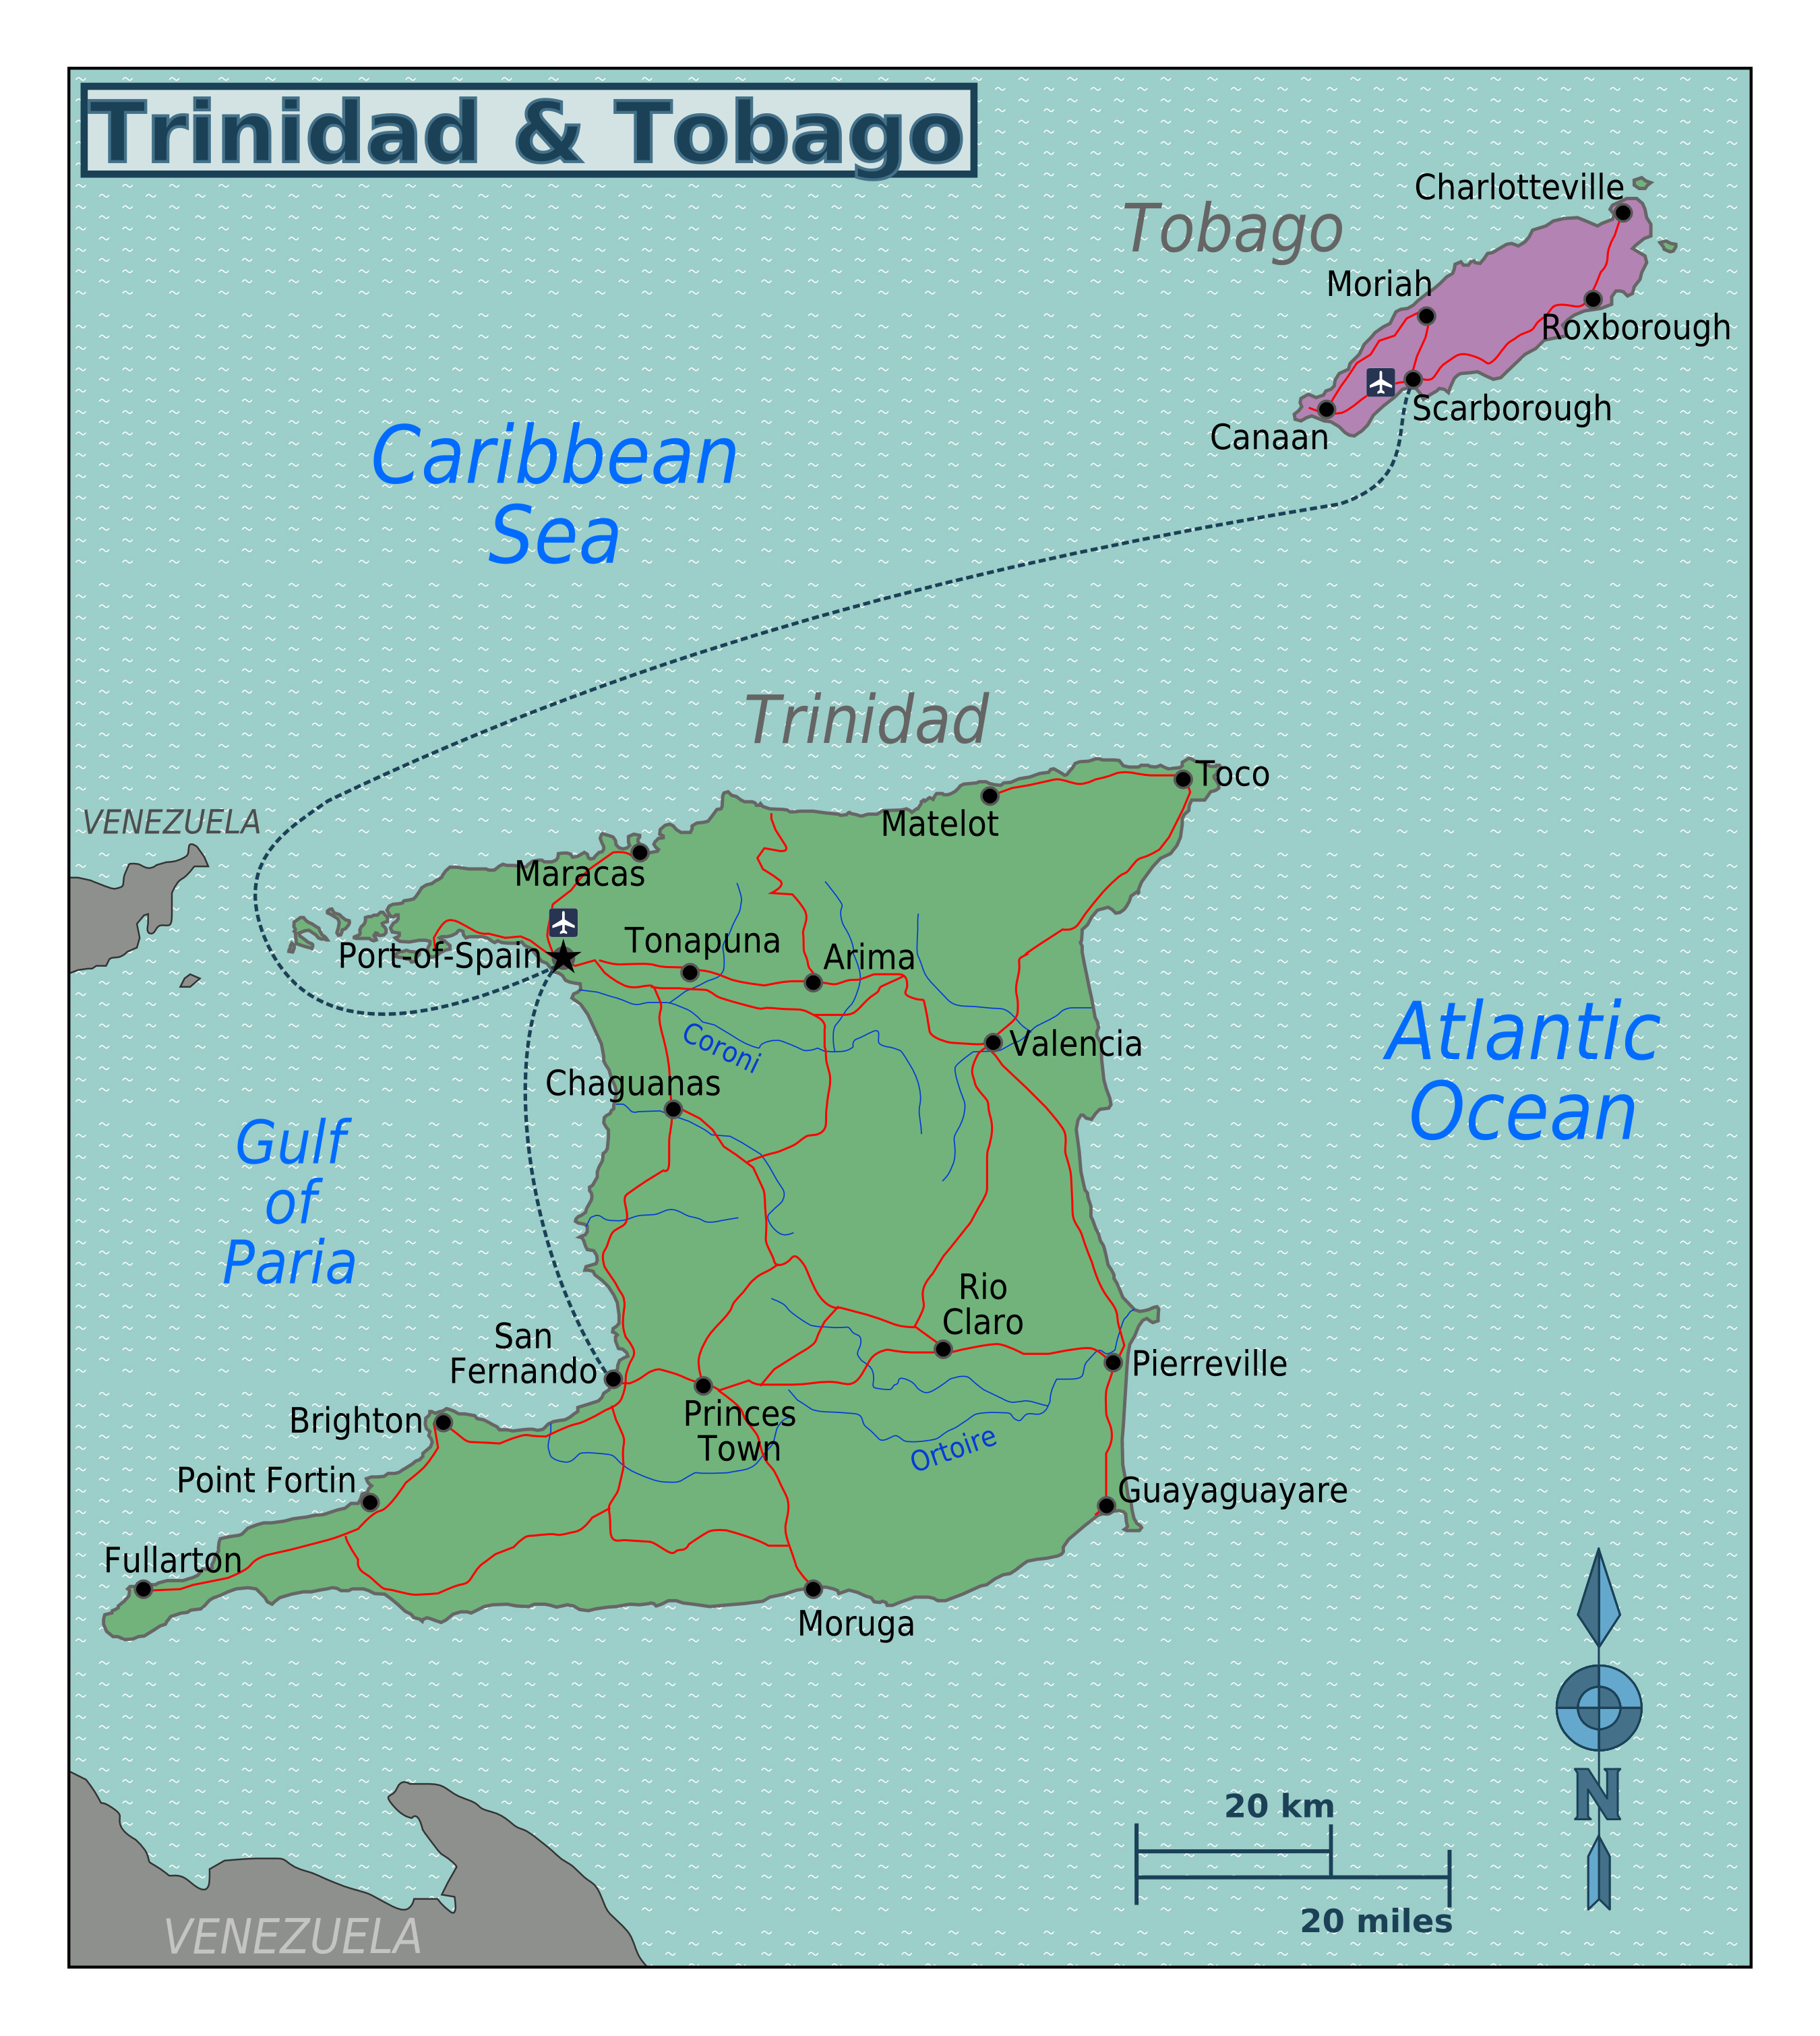 Large Regions Map Of Trinidad And Tobago Trinidad And Tobago North America Mapsland Maps Of The World